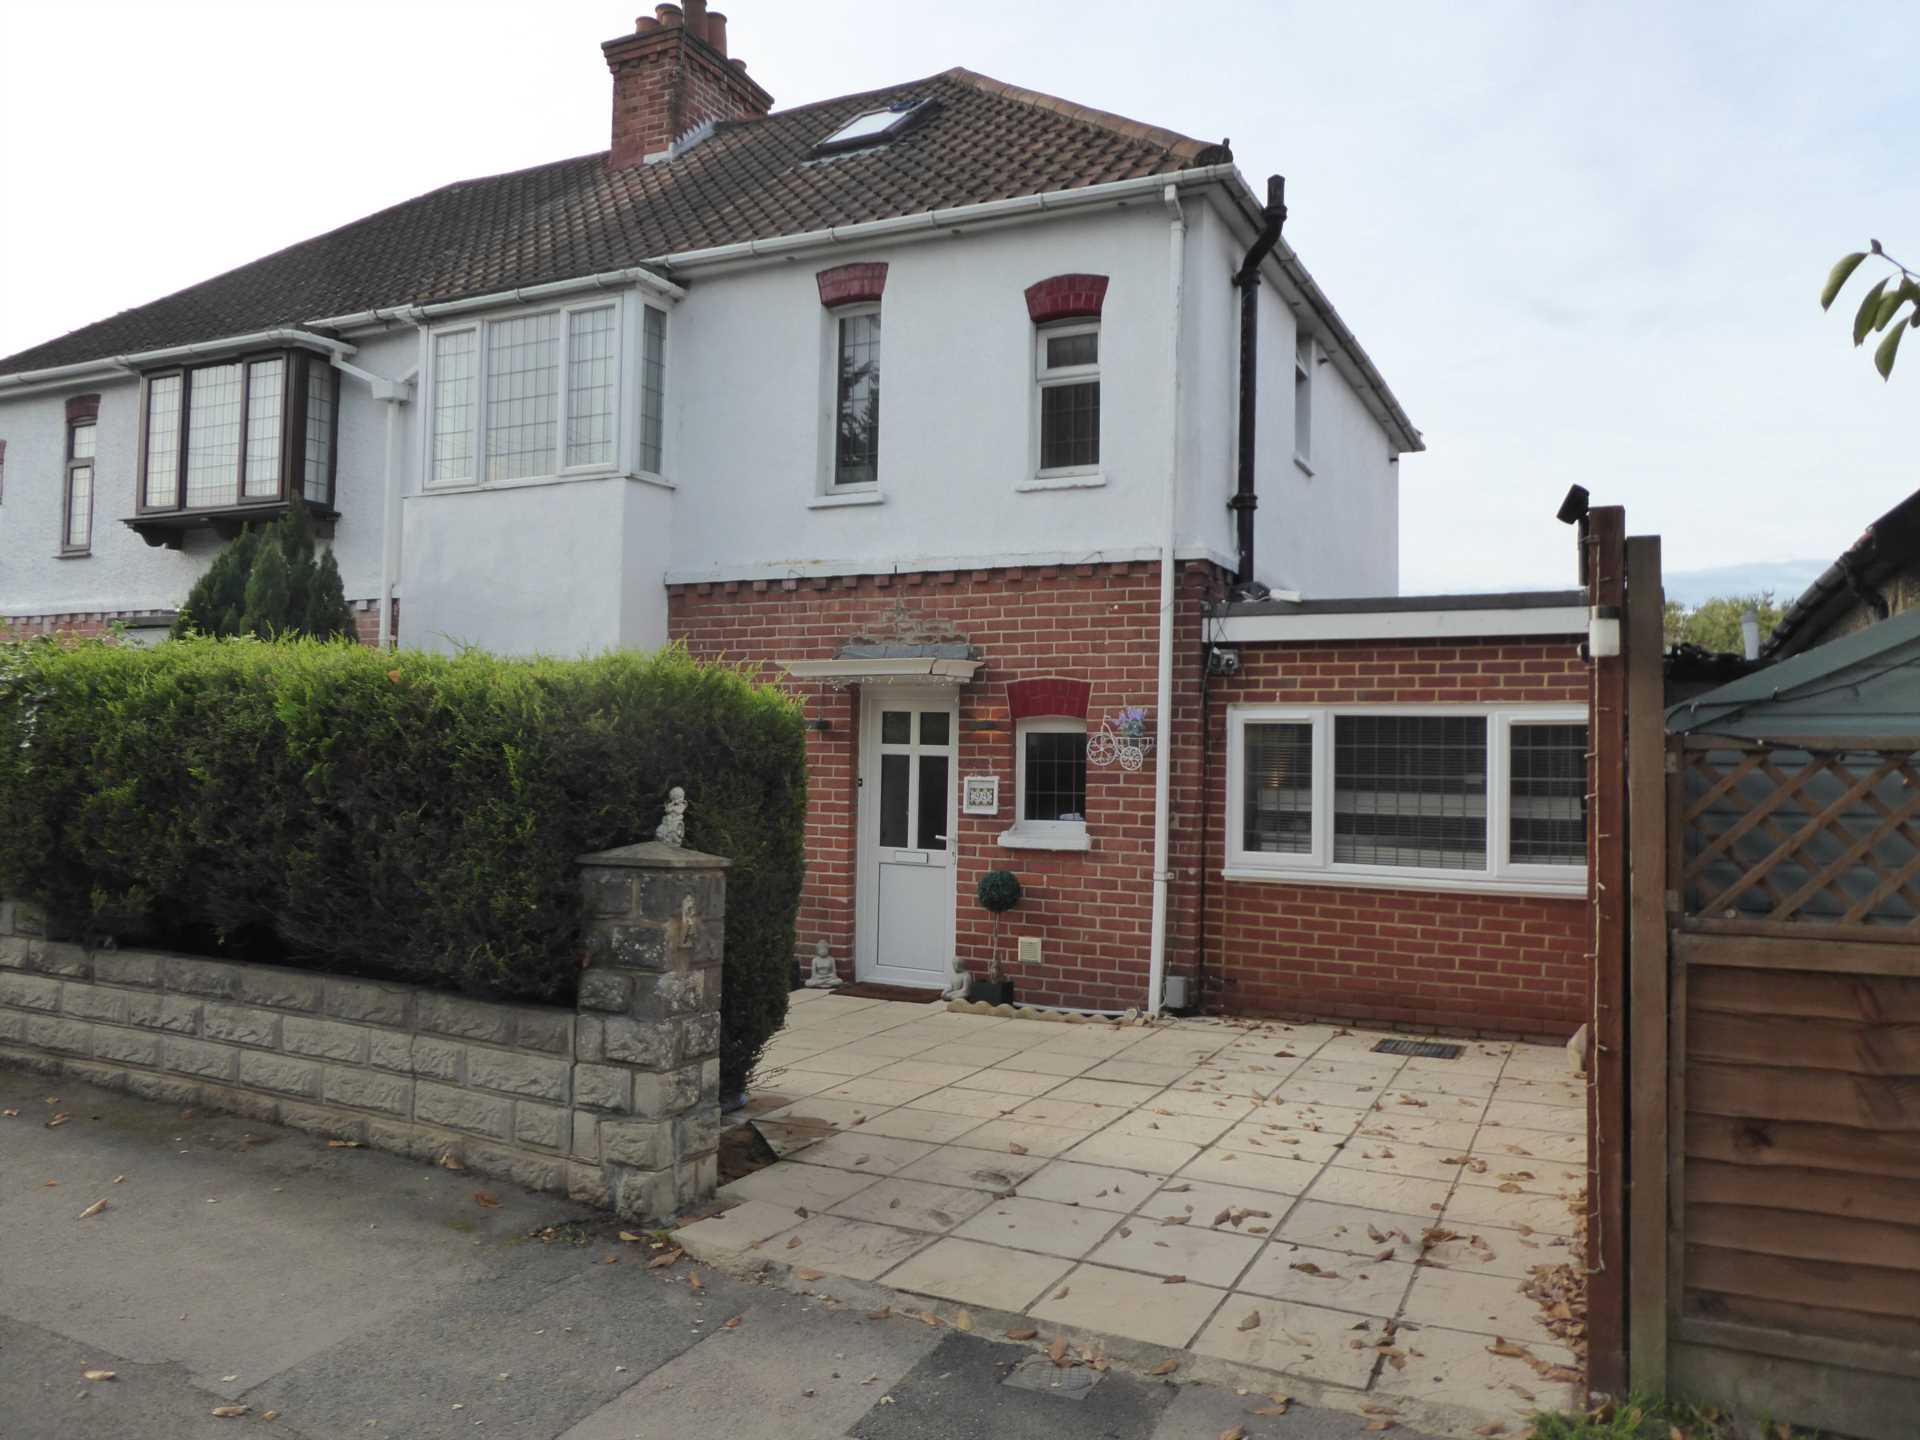 4 Bedroom – 98 Anderson Avenue, Reading